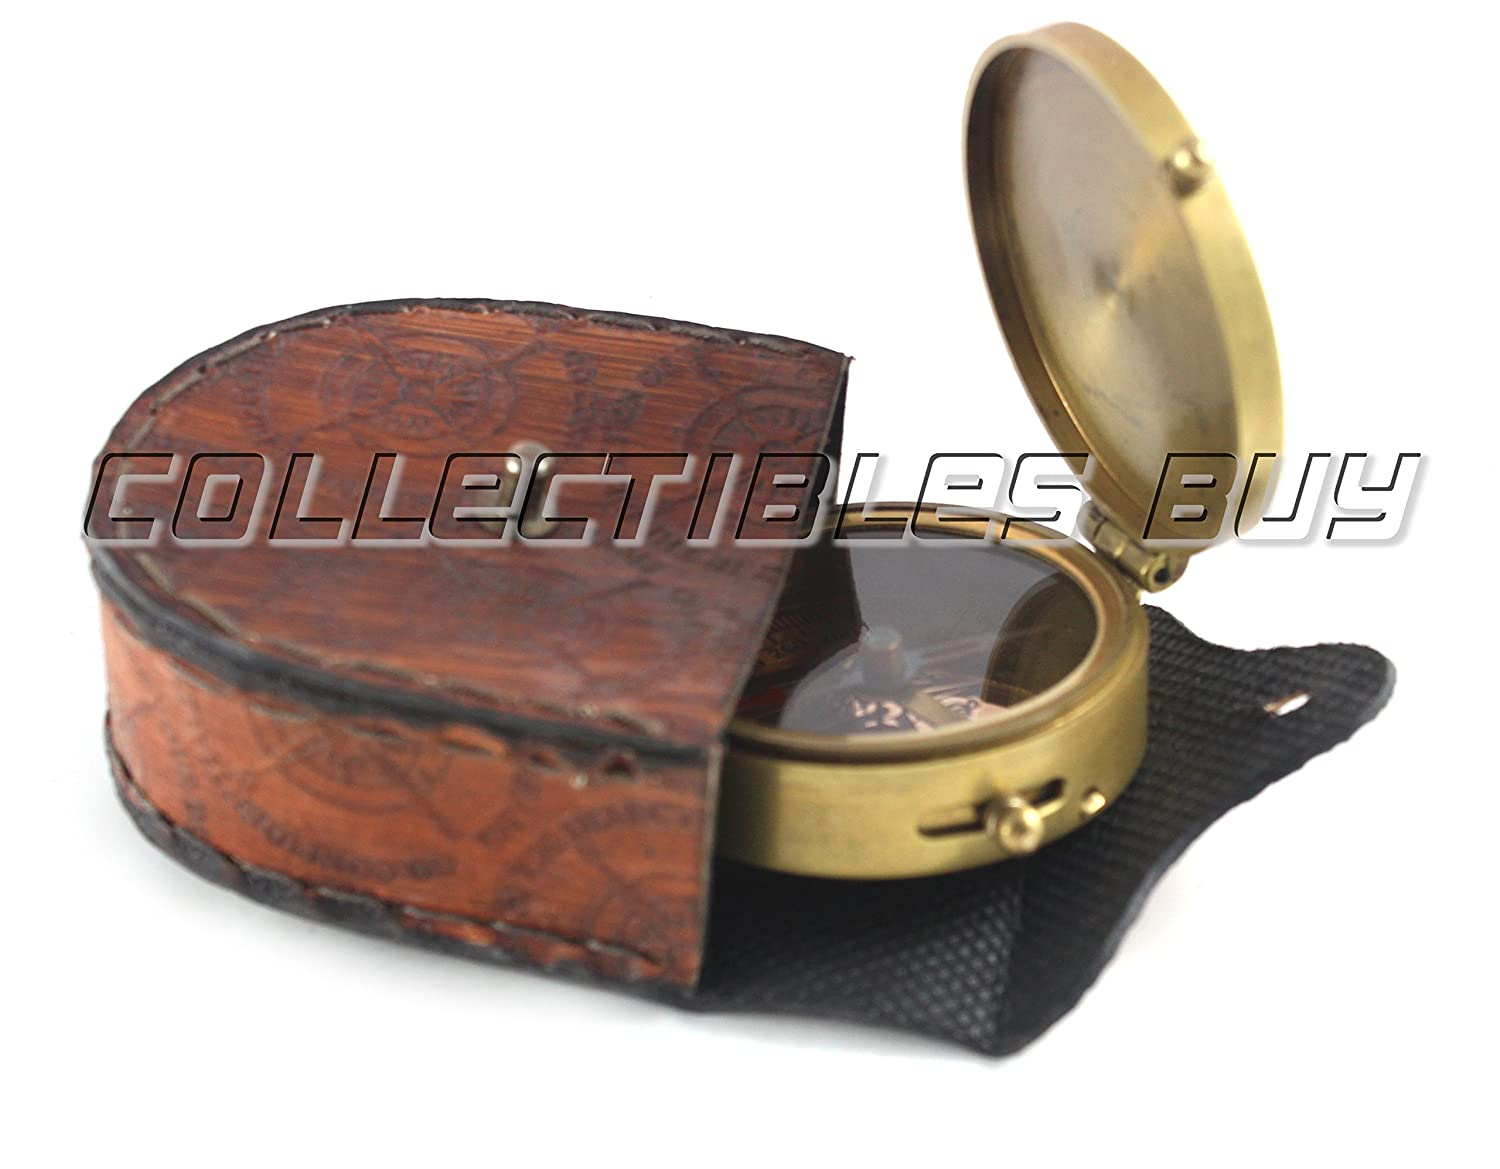 Collectibles Buy Antique Marine Plane Design Nautical Royal Compass with Leather Case Nautical Gift Article